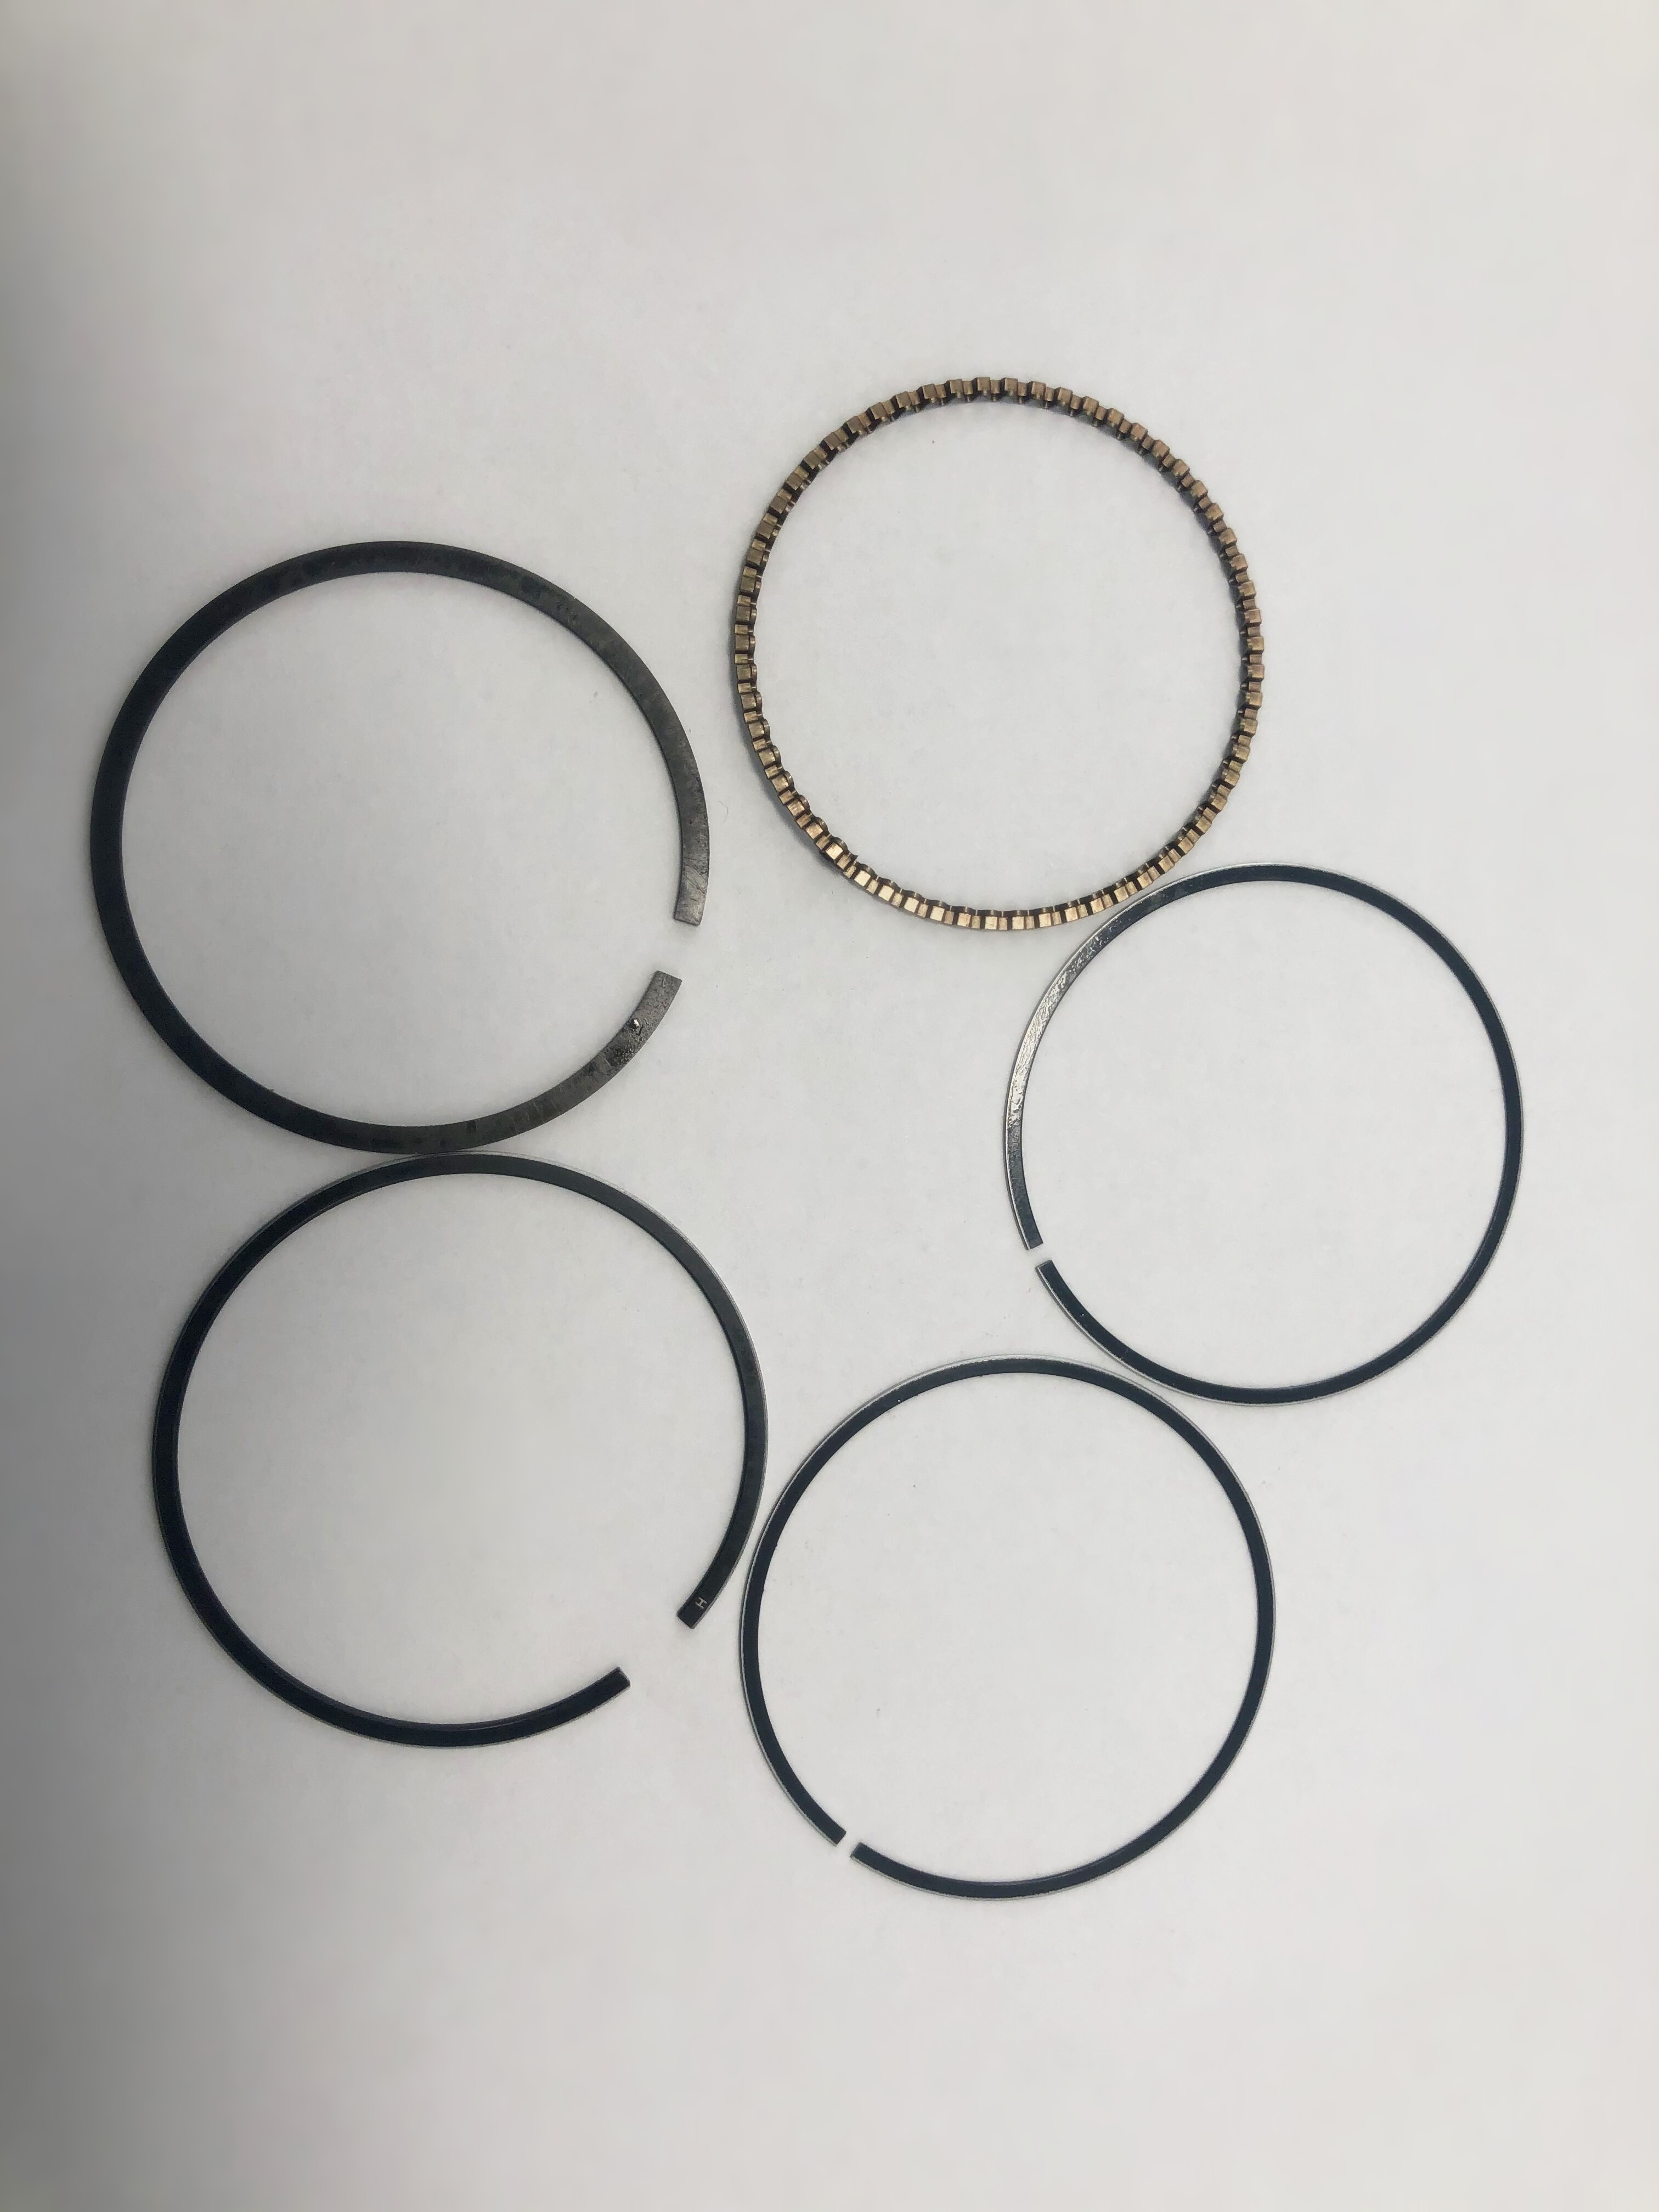 Boat Motor Piston Ring Set (Standard) 69M-E1603-00-00 69M-E1603-01-00 For Yamaha 4-stroke F2.5A Outboard Engine